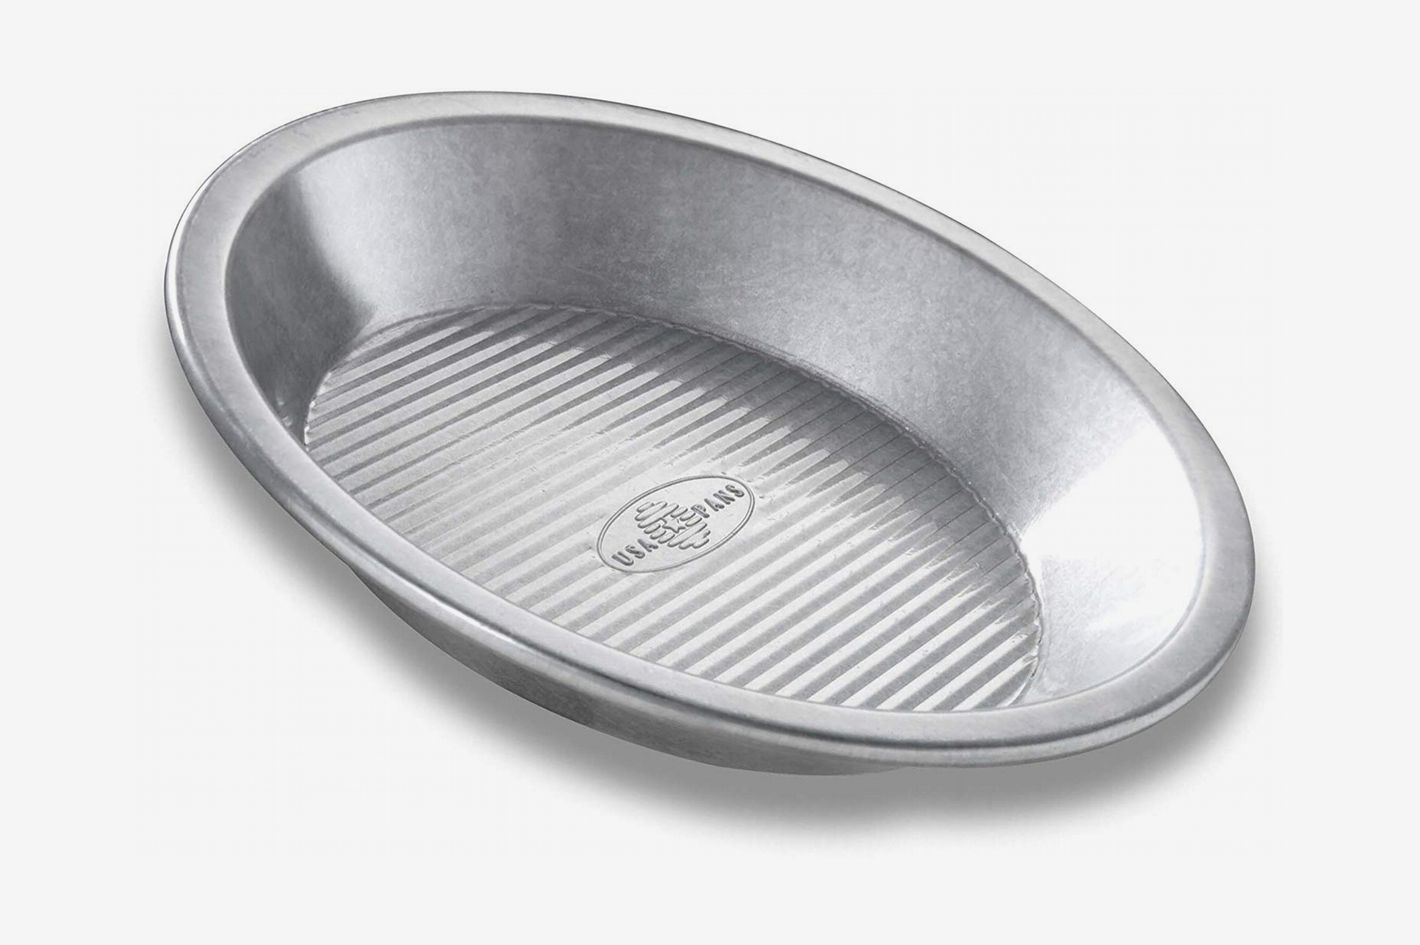 USA Pan Bakeware Aluminized Steel Pie Pan, 9-Inch